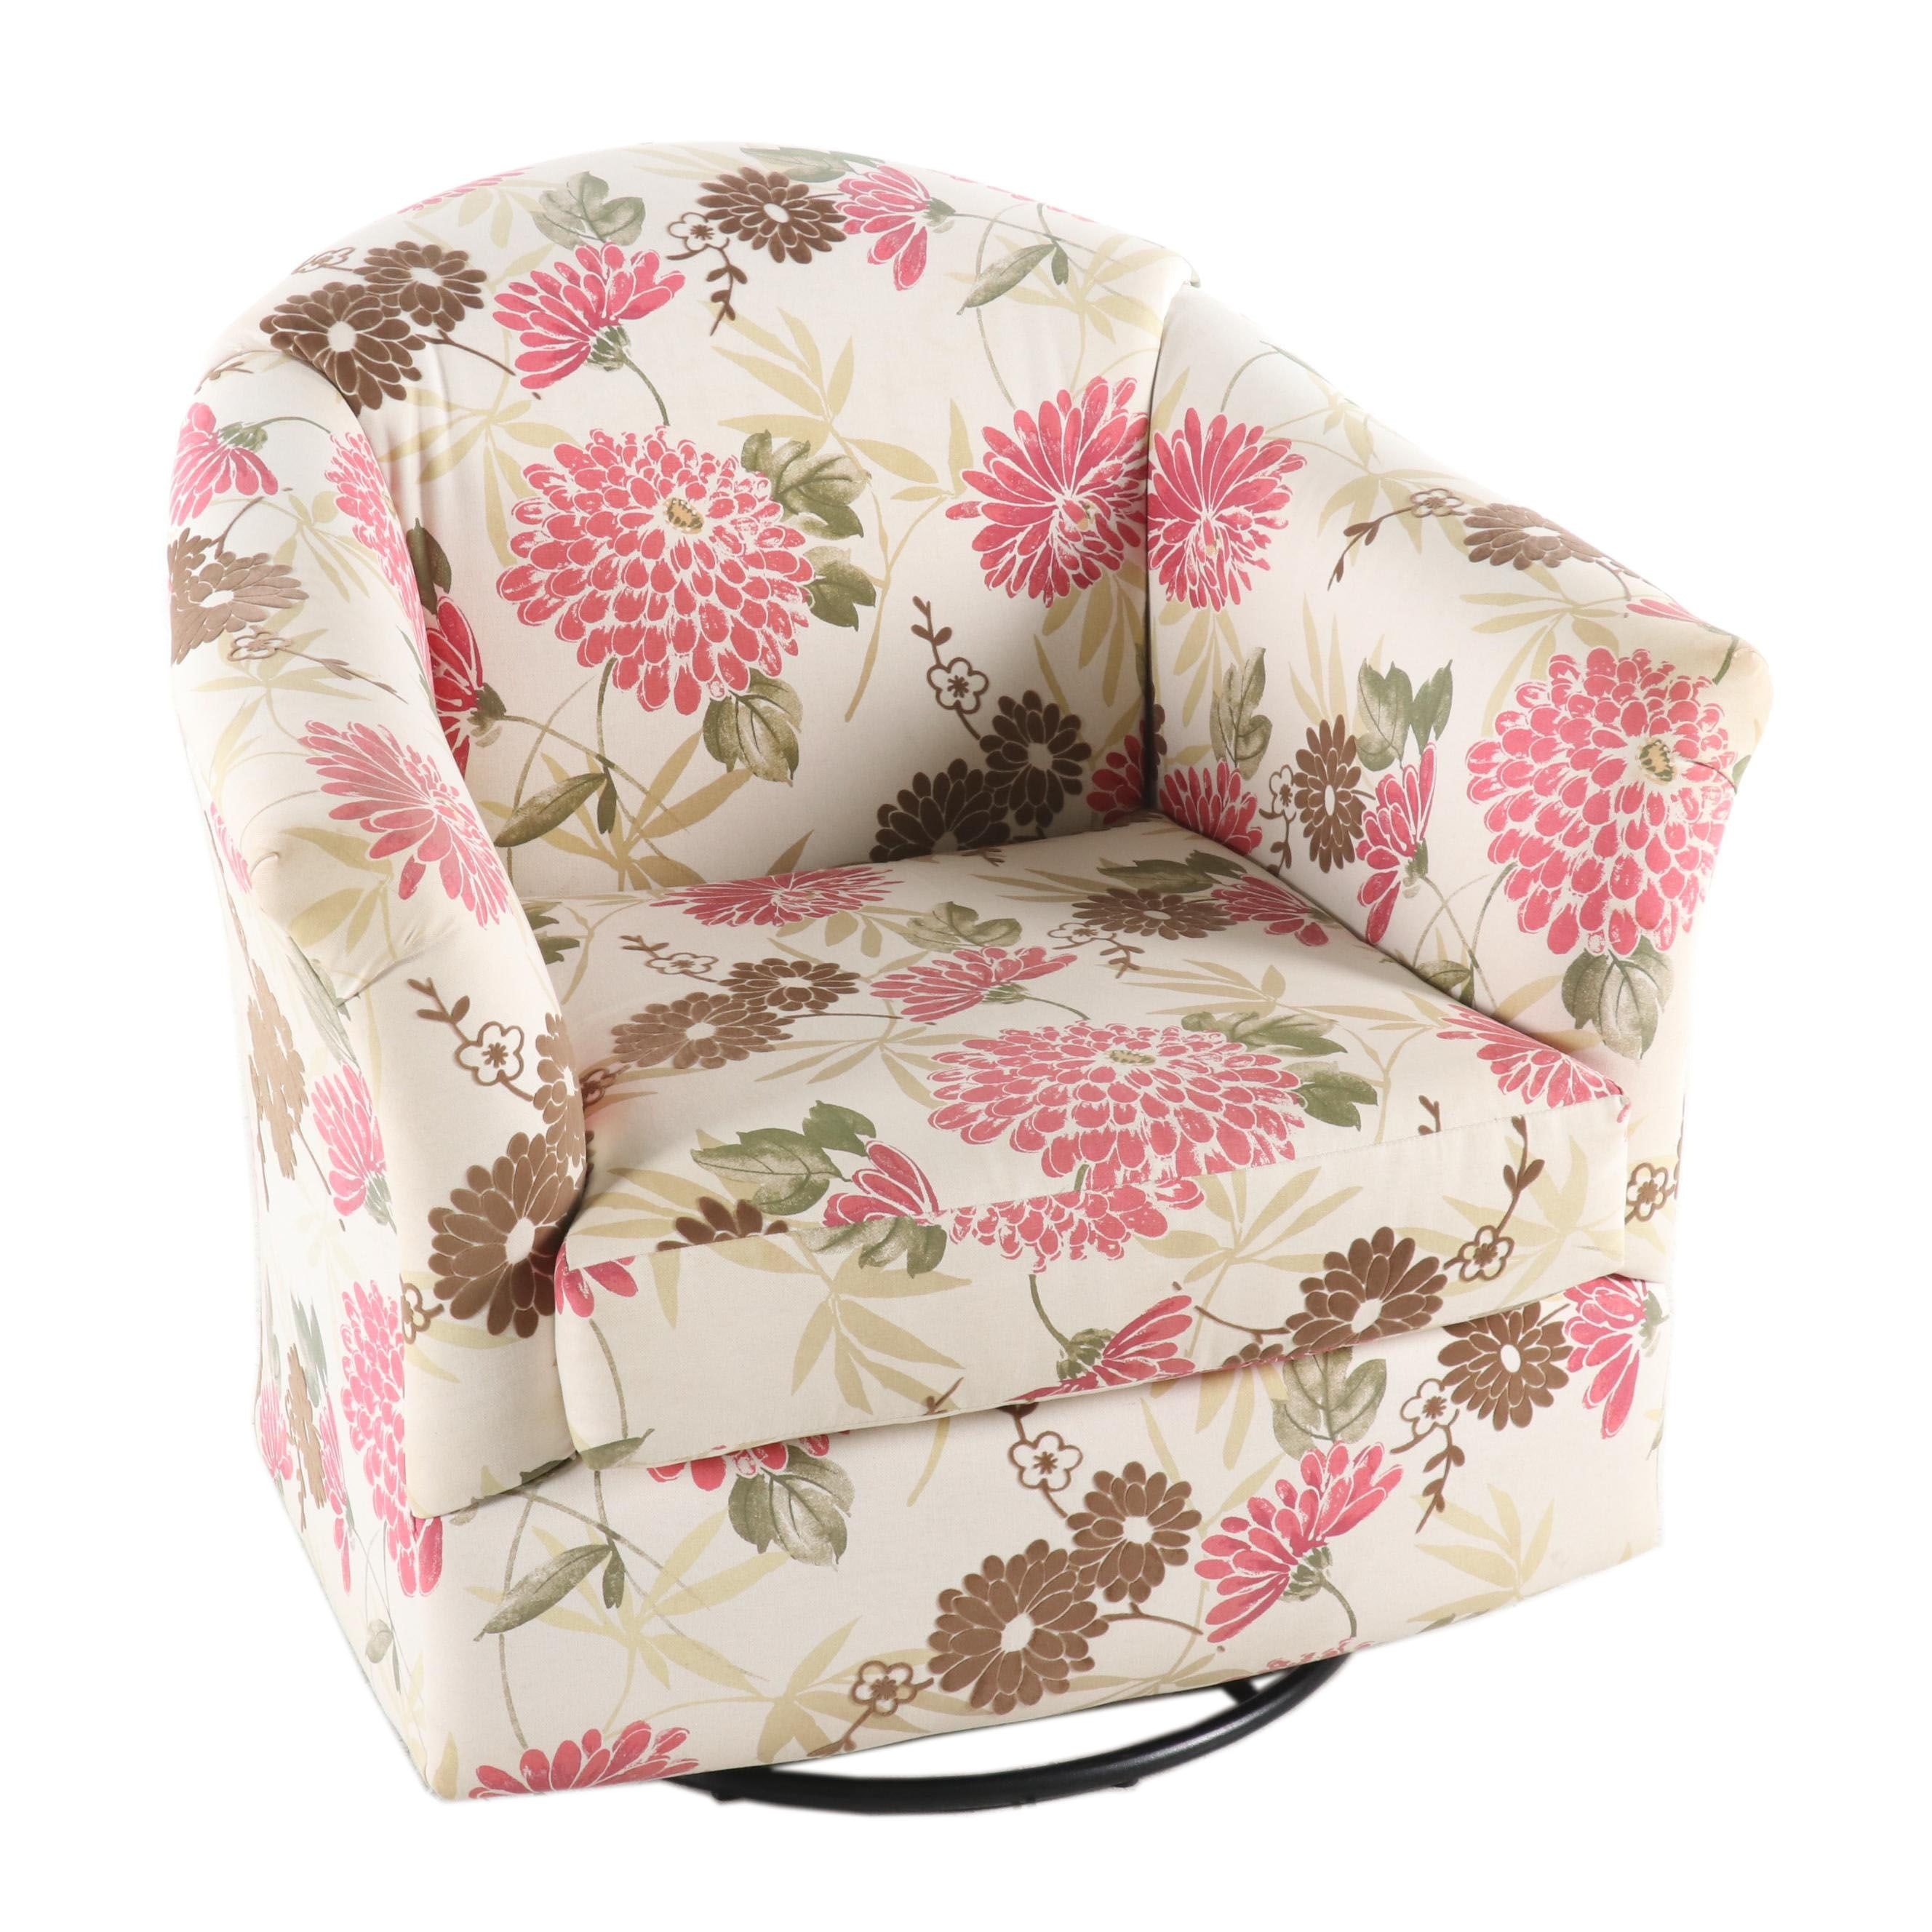 Upholstered Floral Swivel Armchair, Contemporary